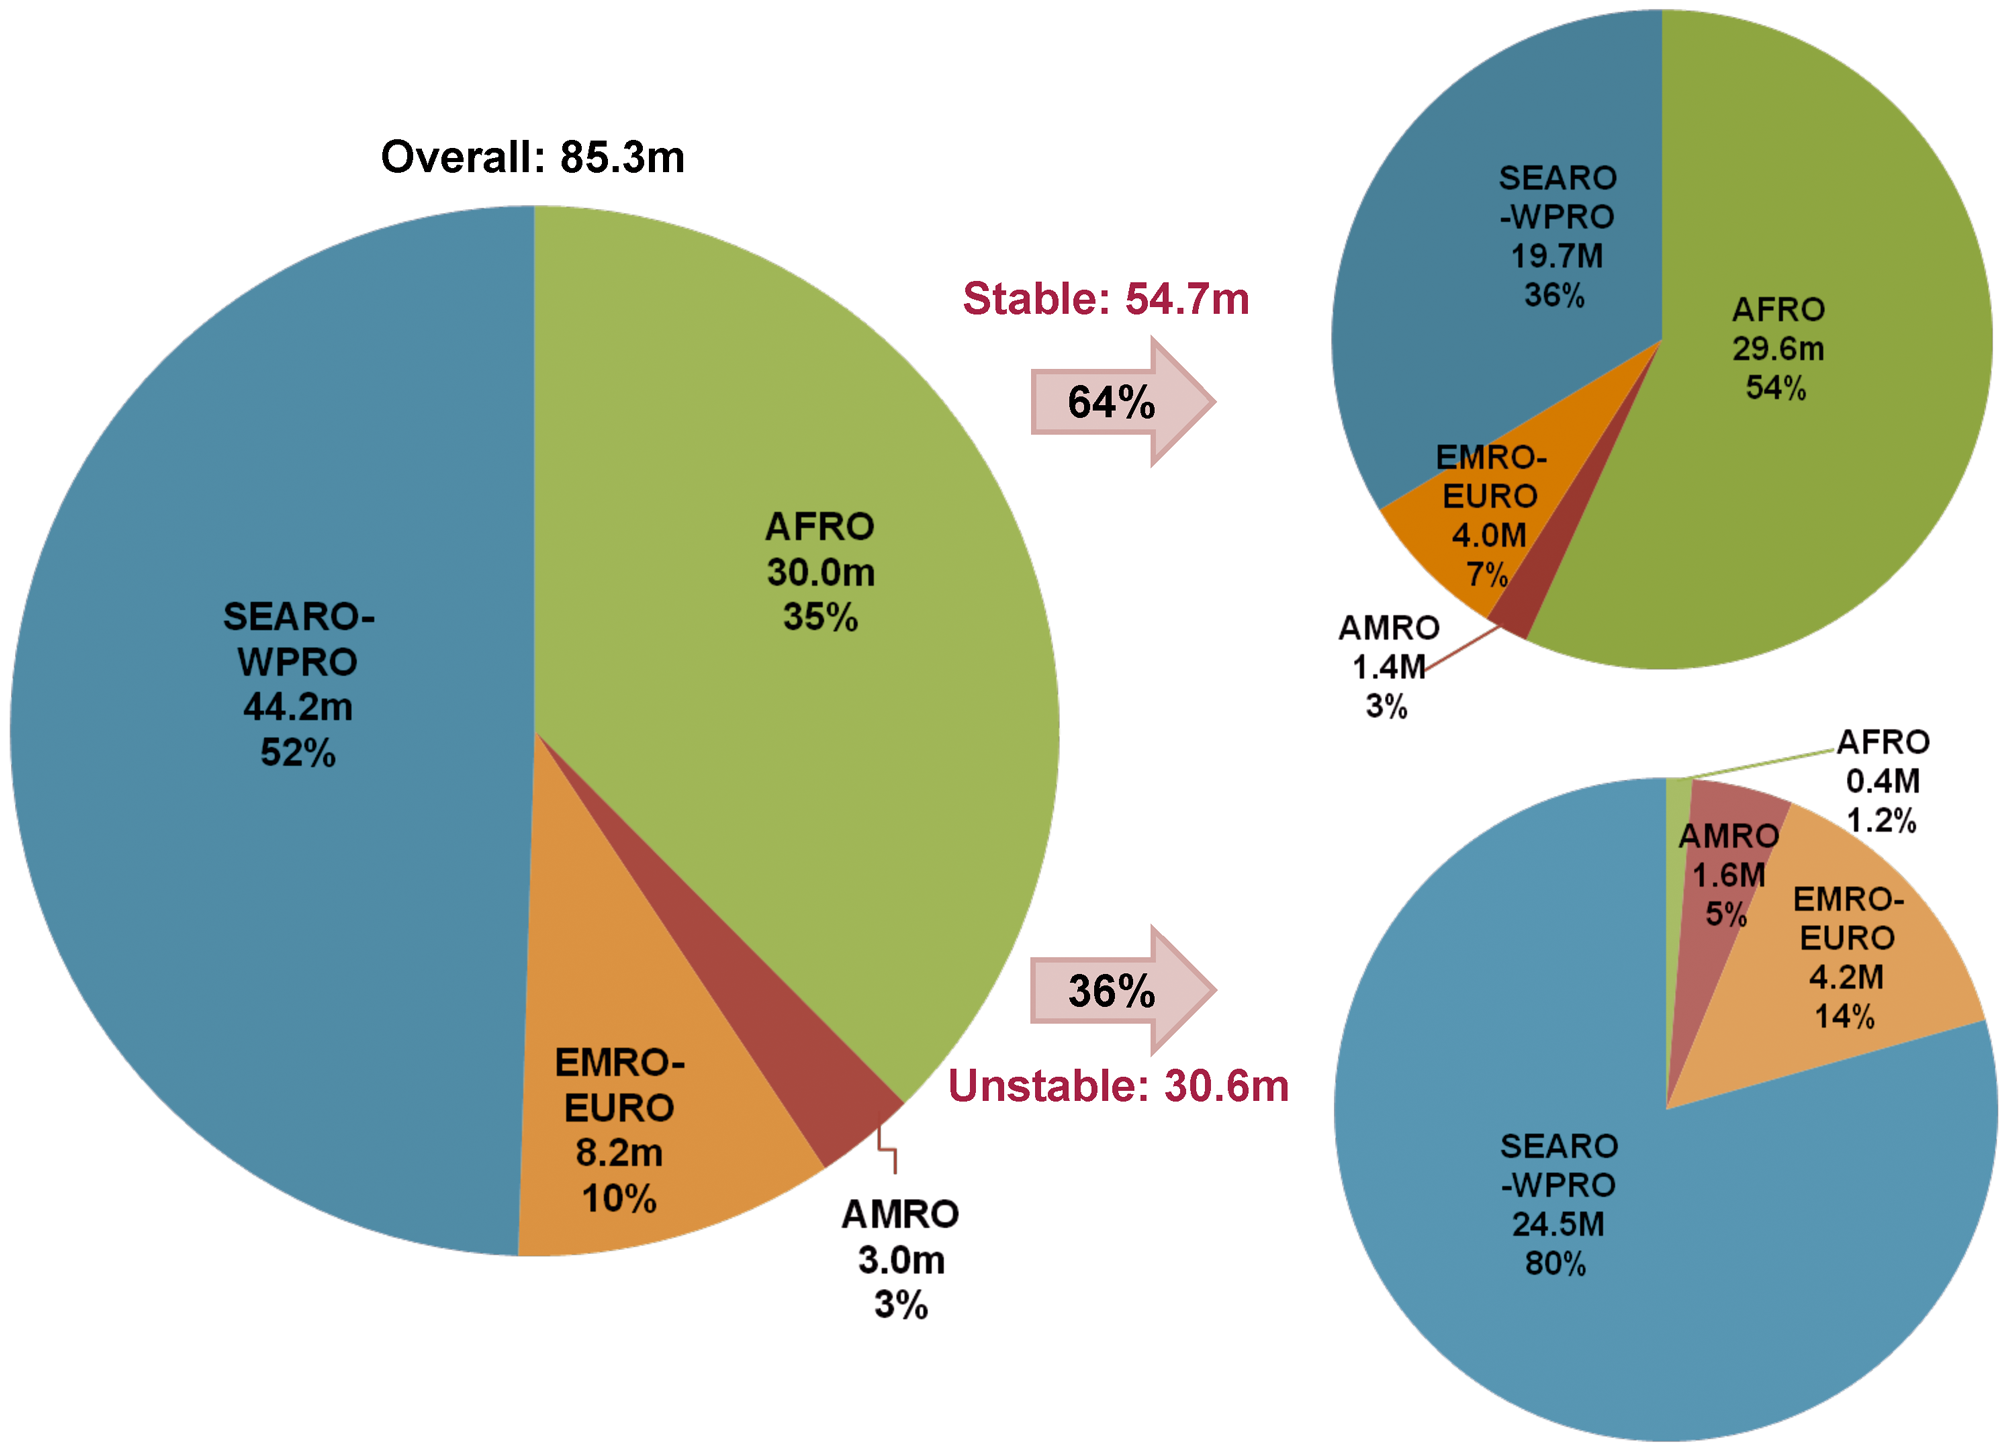 Distribution of the number of pregnancies in areas with <i>P. falciparum</i> malaria in 2007 by WHO regions and the corresponding proportion living under stable versus unstable transmission.